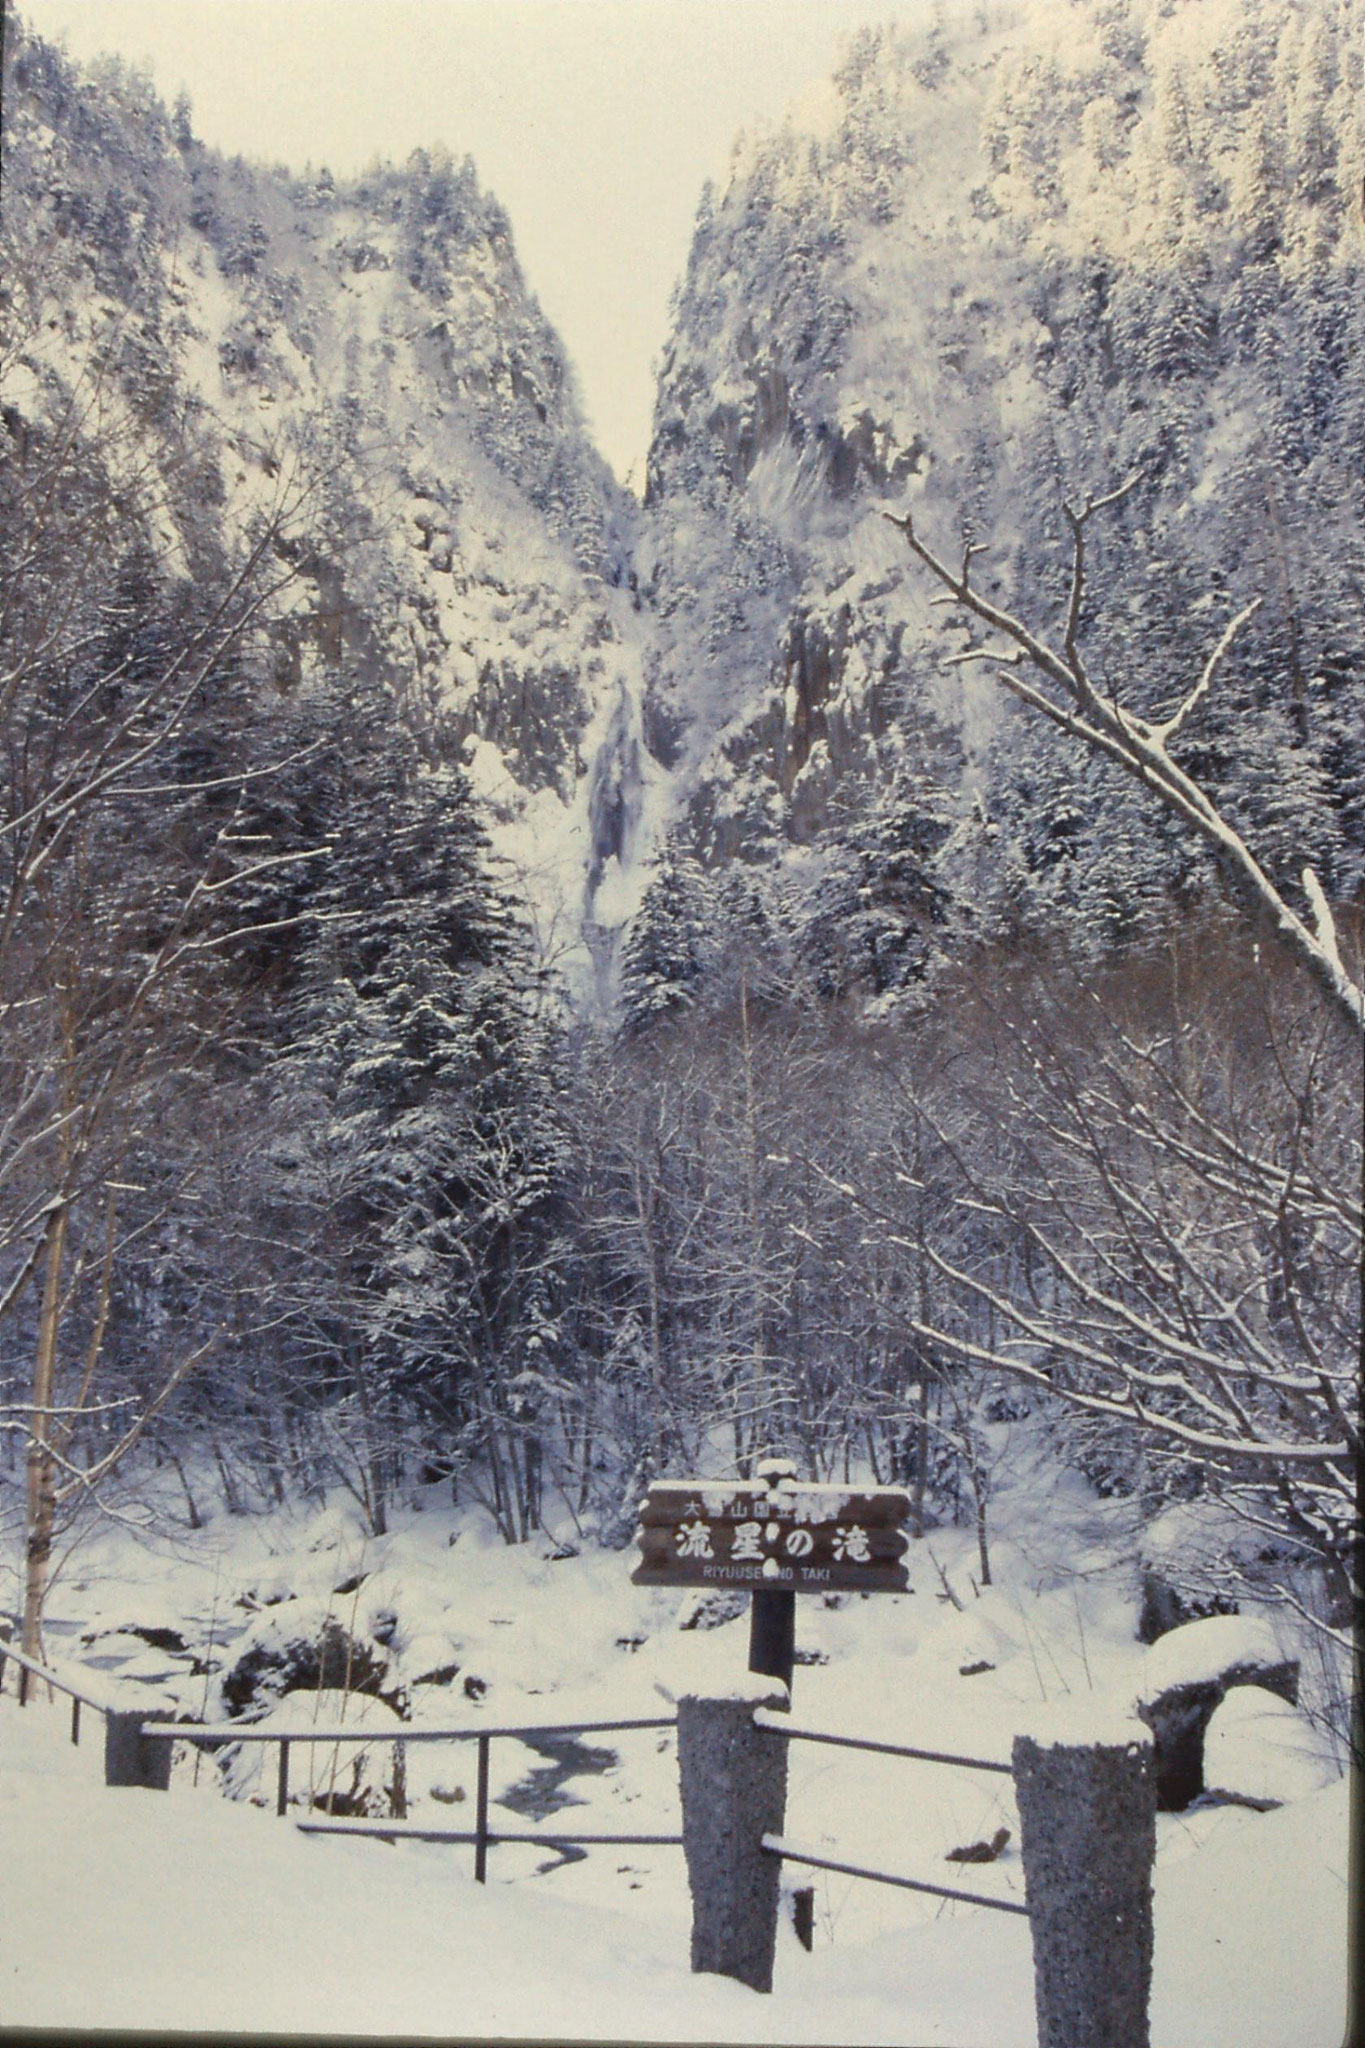 12/1/1989: 13: Sounkyo Onsen Gorge, Ginga-no-taki